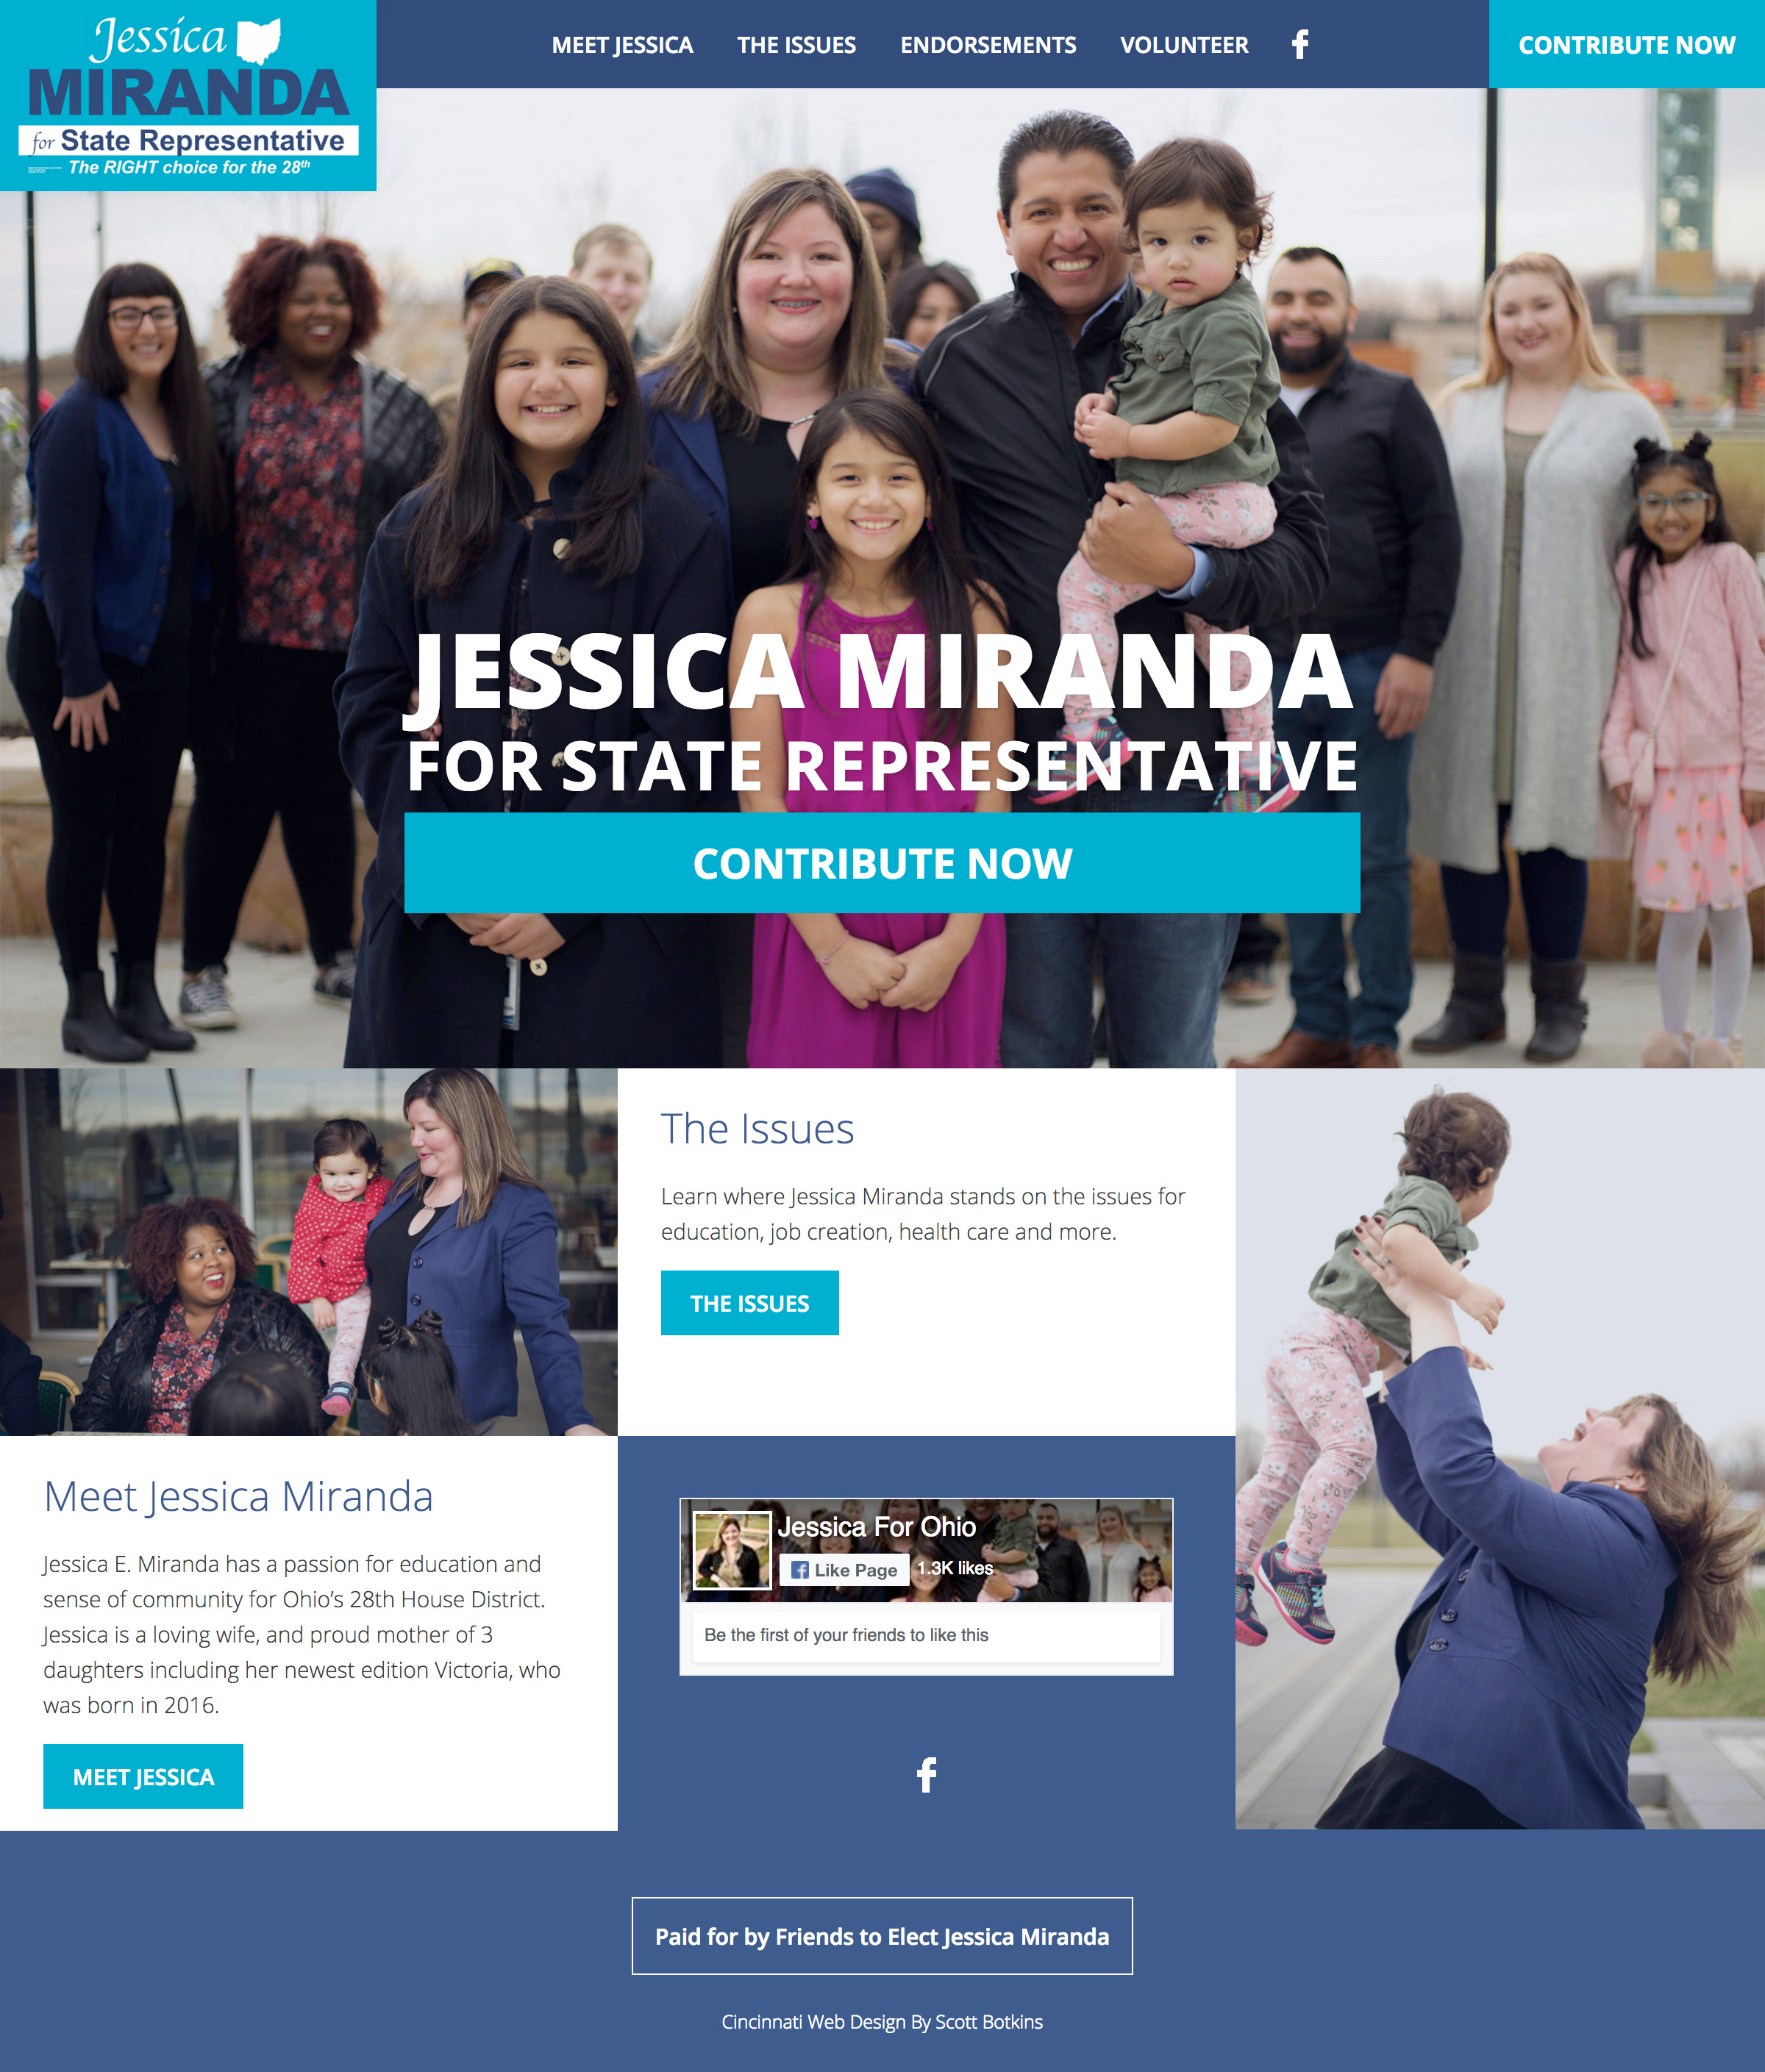 Jessica Miranda For State Representative